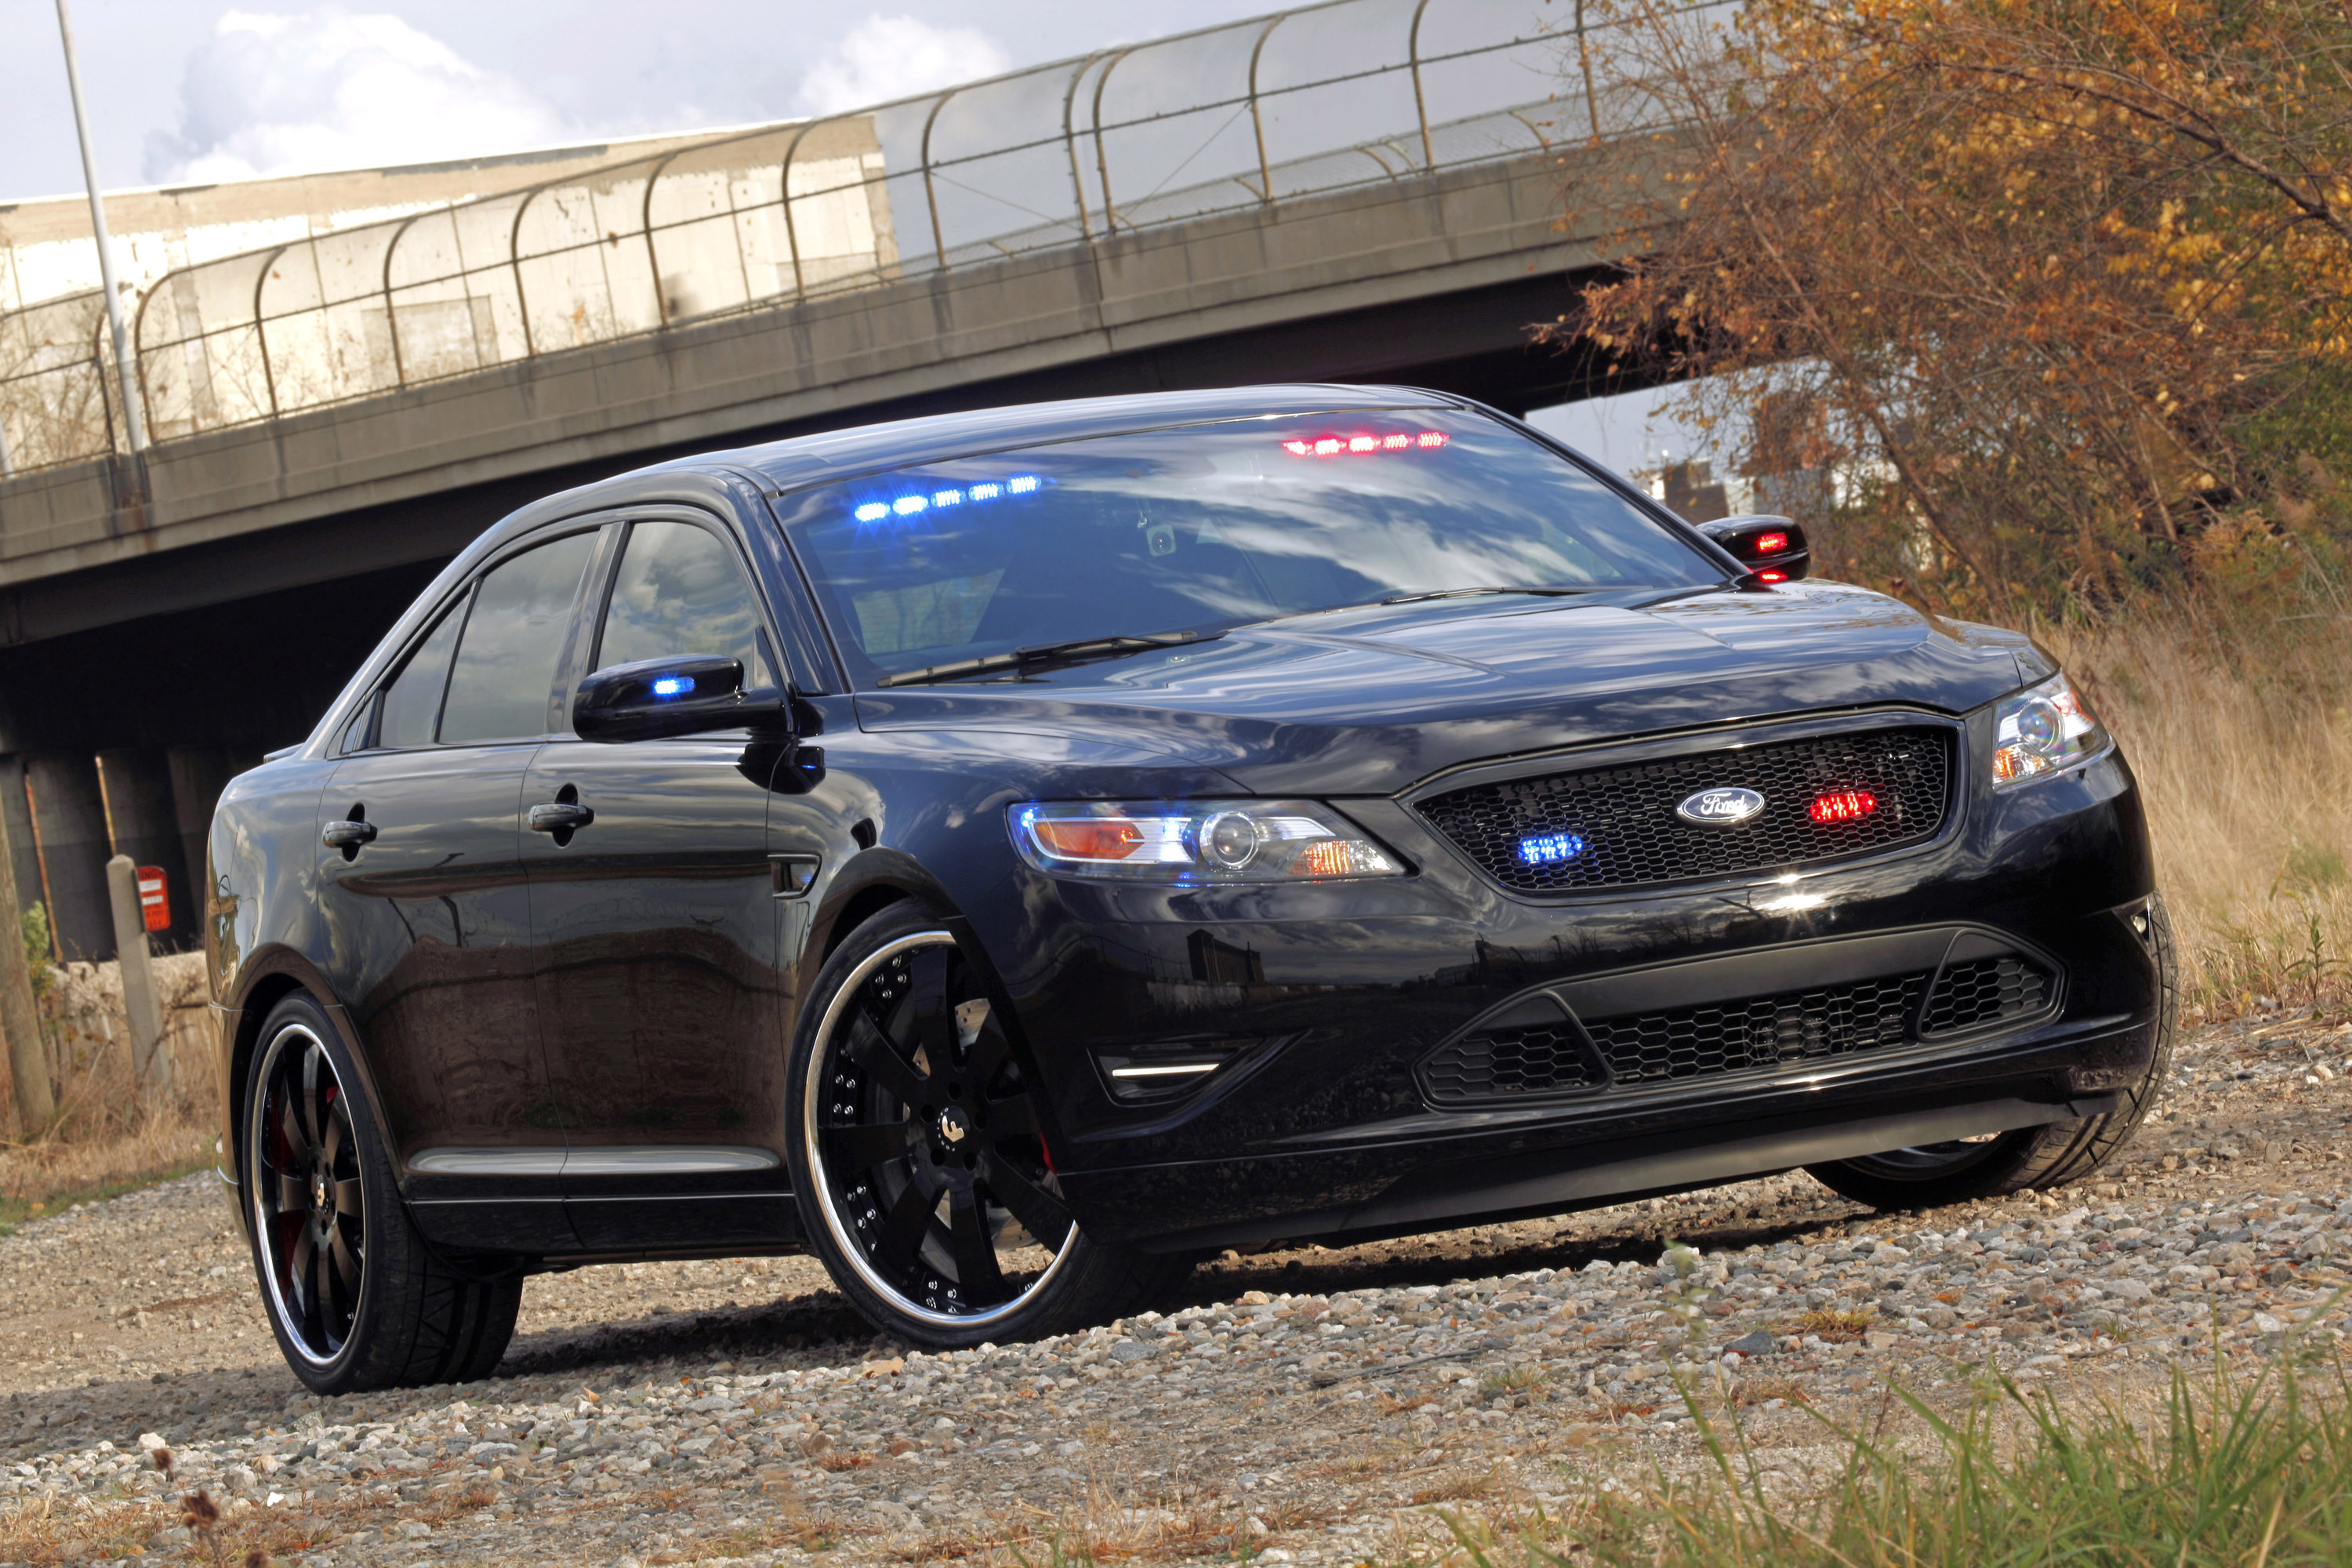 Ford Stealth Police Interceptor Concept photo #1